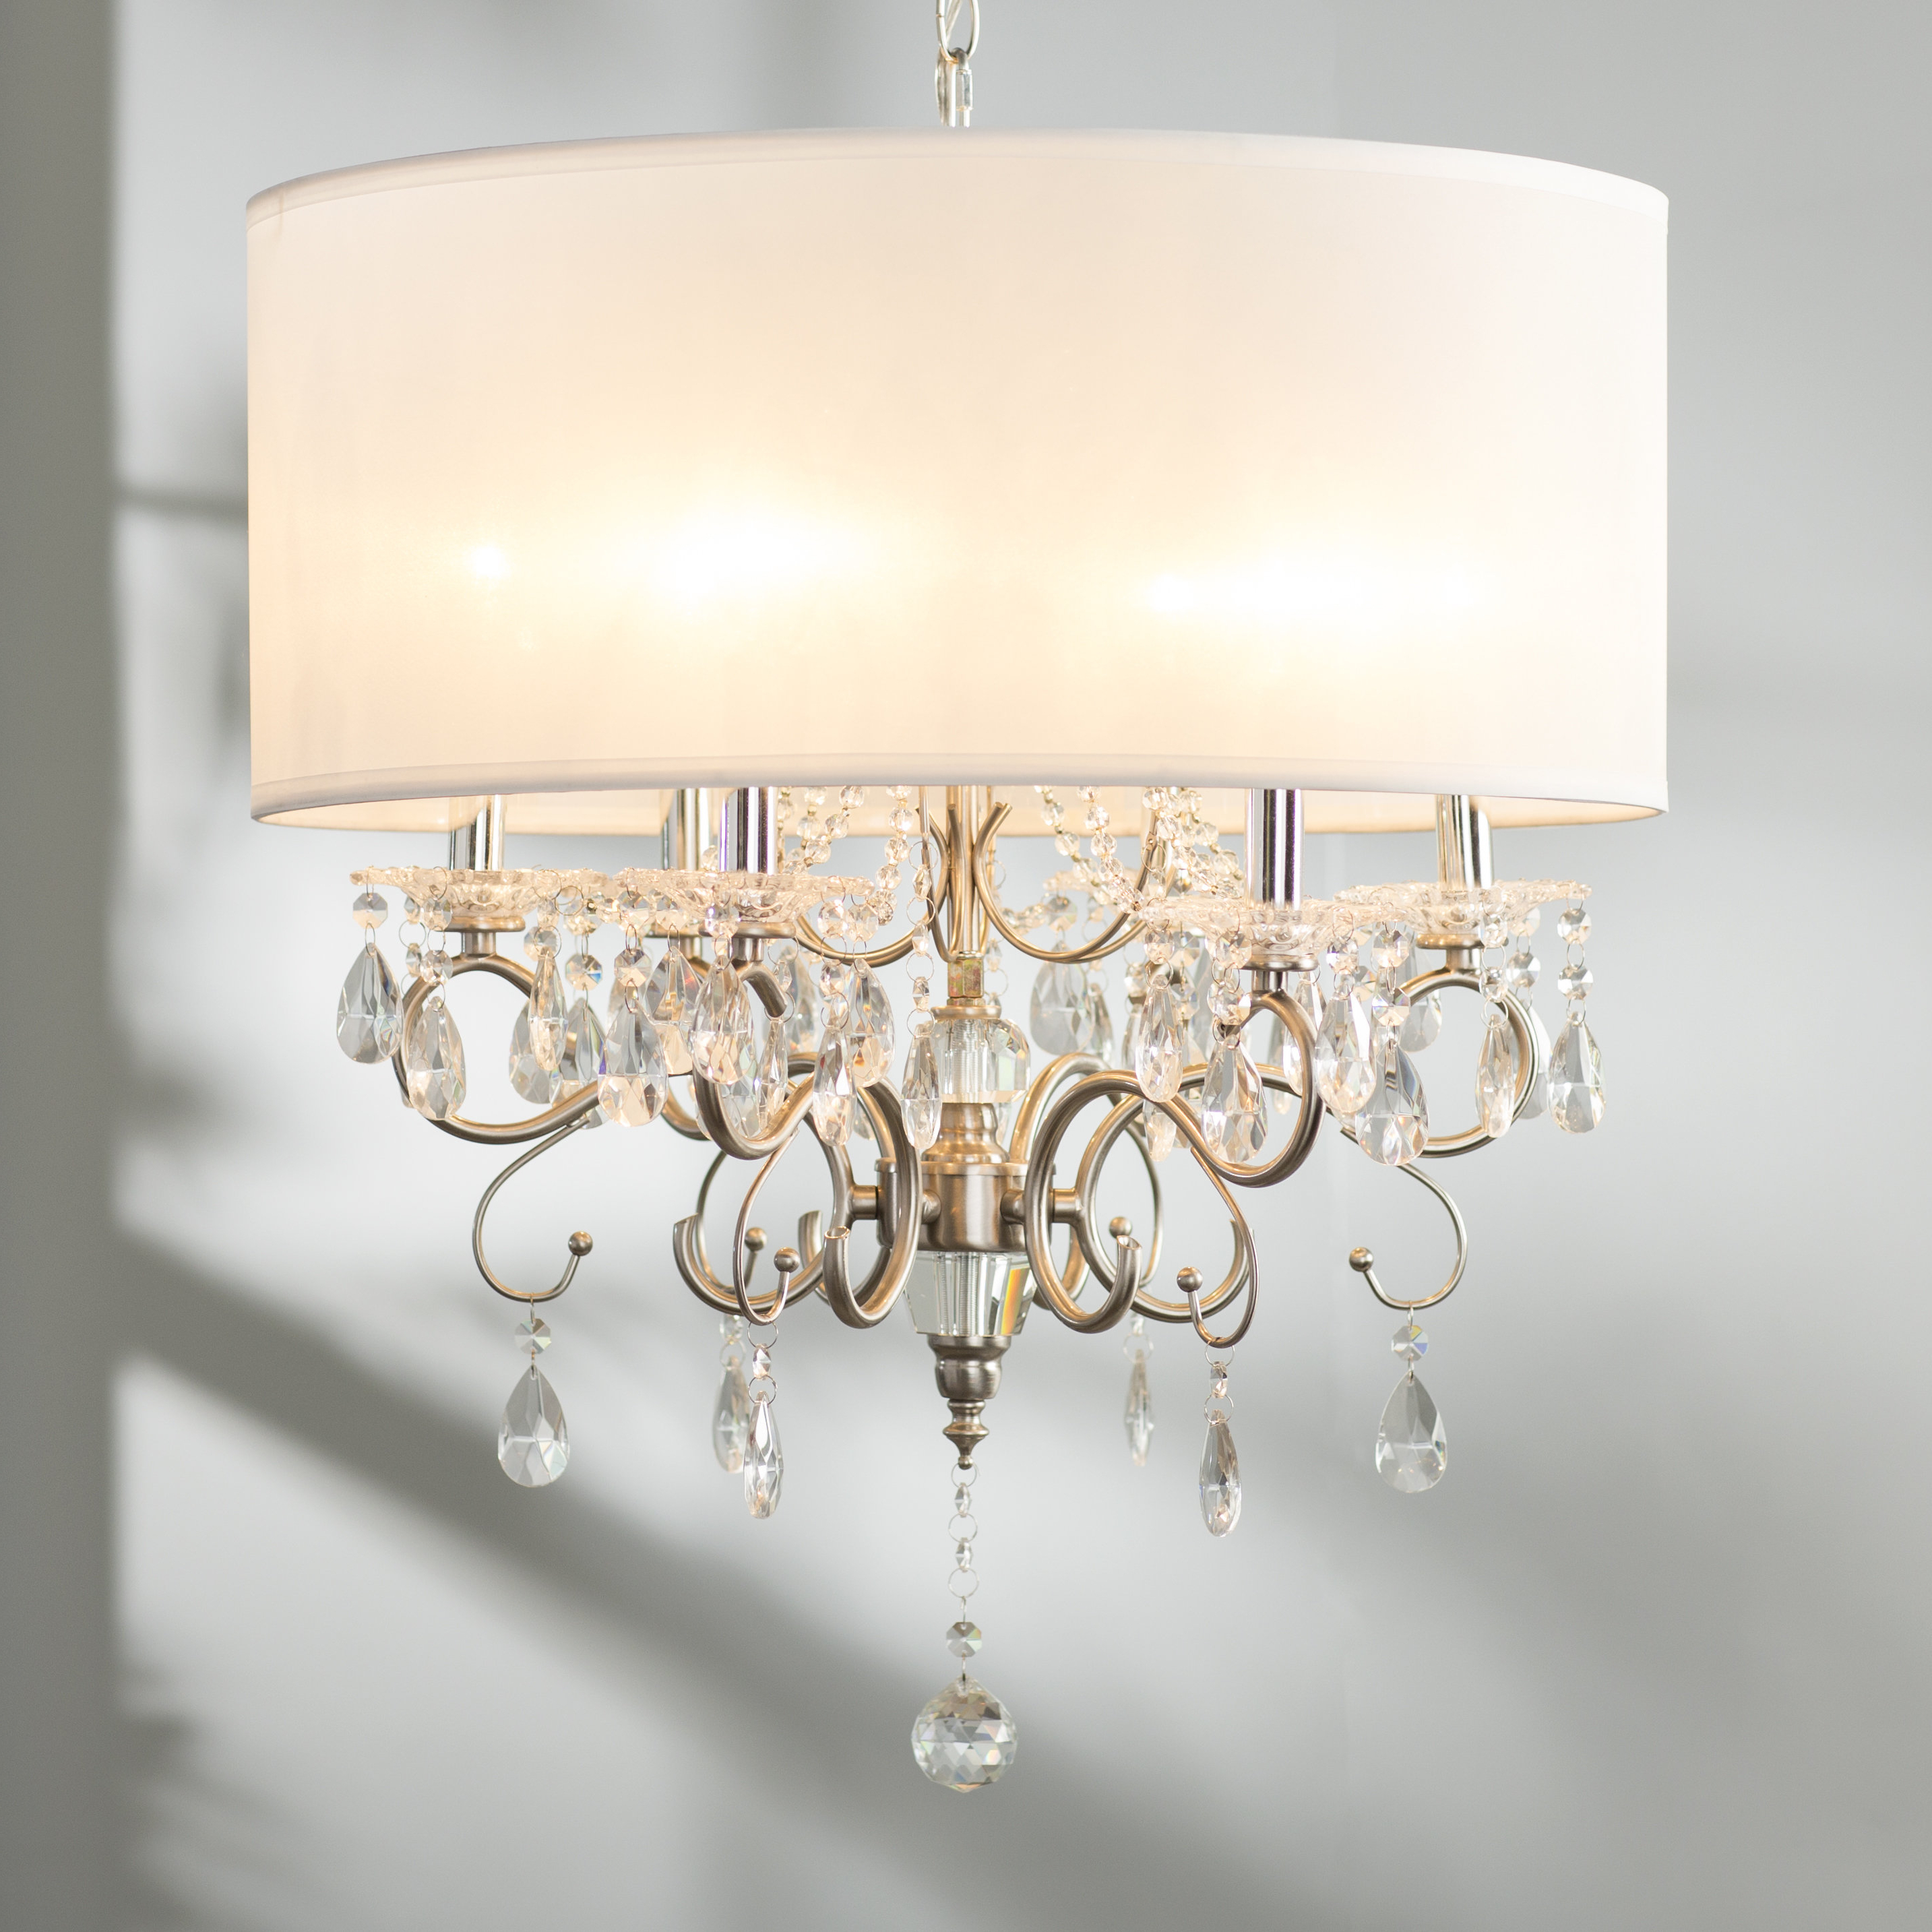 "Widely Used Dailey 4 Light Drum Chandeliers With Drum Large (Between 21"" – 30"" Wide) Chandeliers You'll Love (View 18 of 20)"